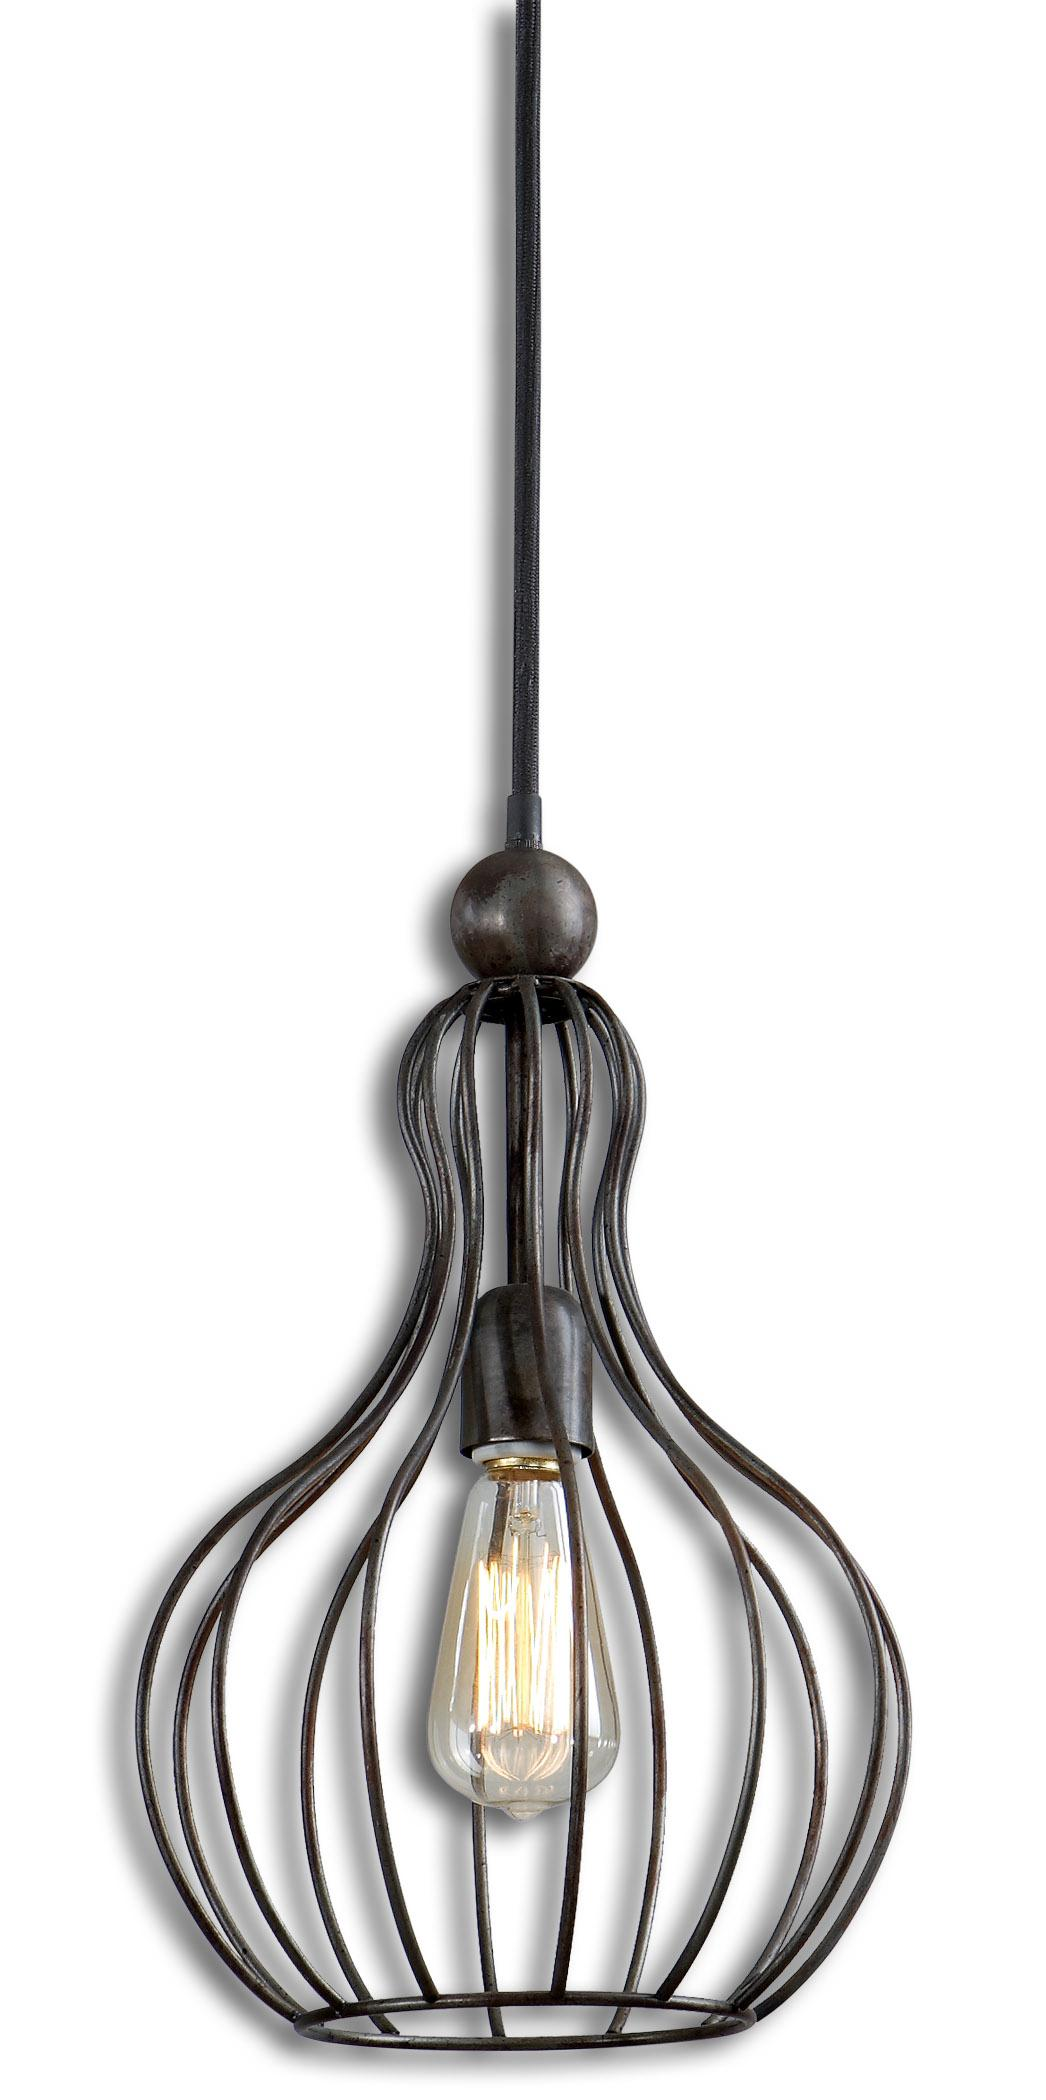 Uttermost Lighting Fixtures Bourret 1 Light Pendant - Item Number: 21979